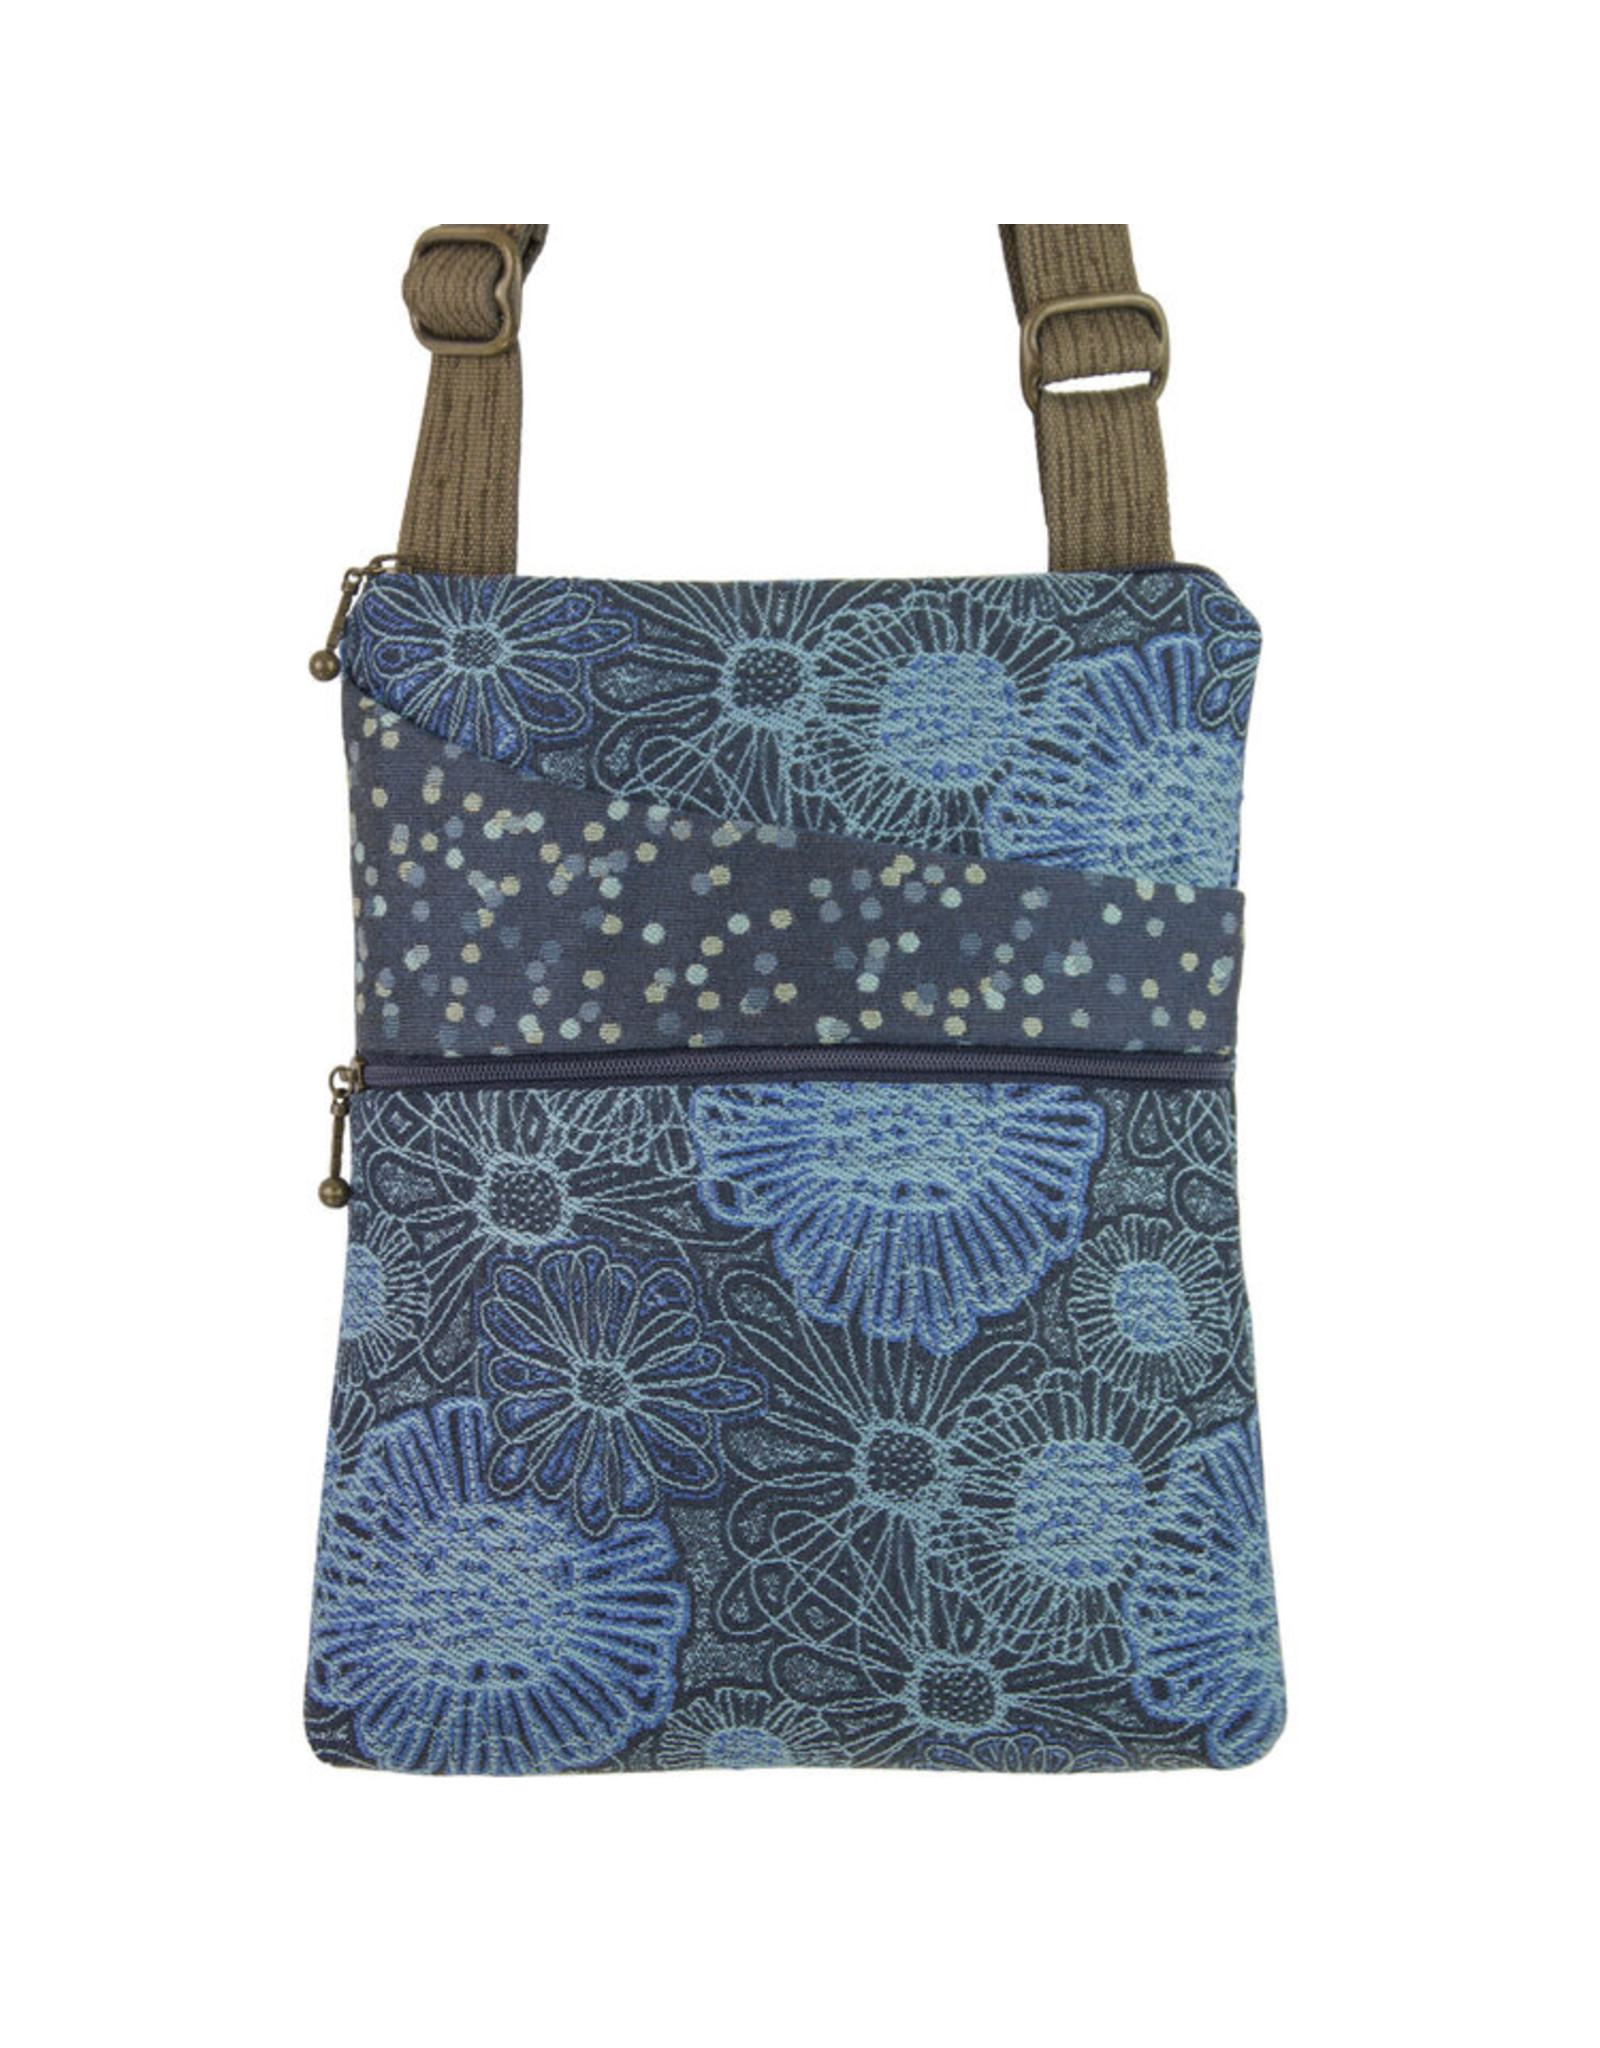 MARUCA BLOOMING BLUE CROSSBODY POCKET BAG